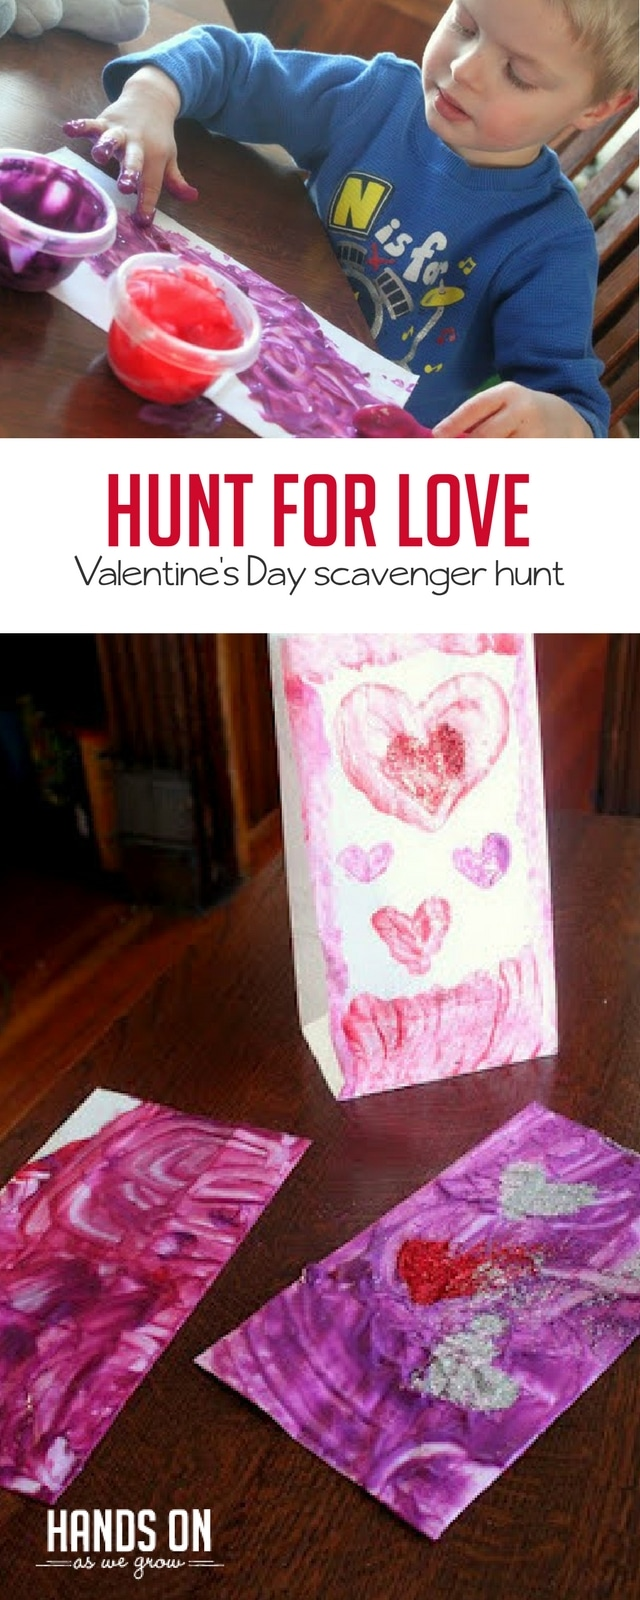 Send your kids on a Hunt for Love around the house with this fun Valentine's activity.